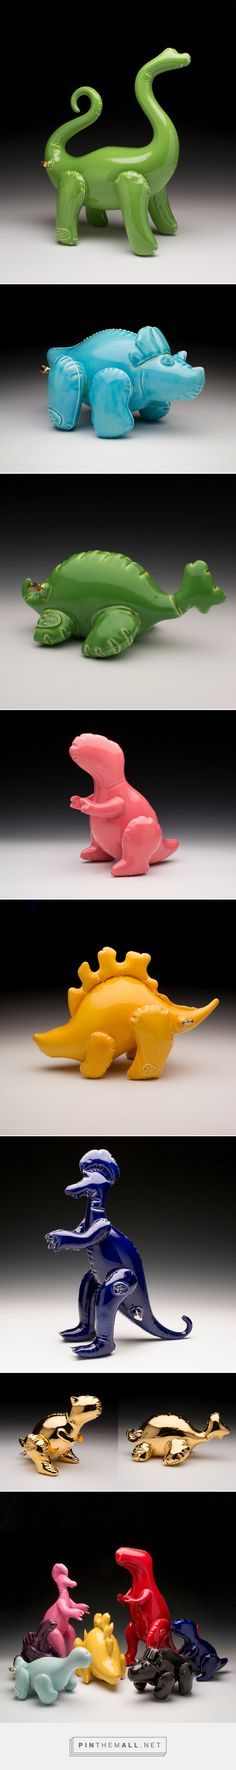 New Ceramic Dino Designs by Brett Kern Made to Look Like Inflatable Toys…